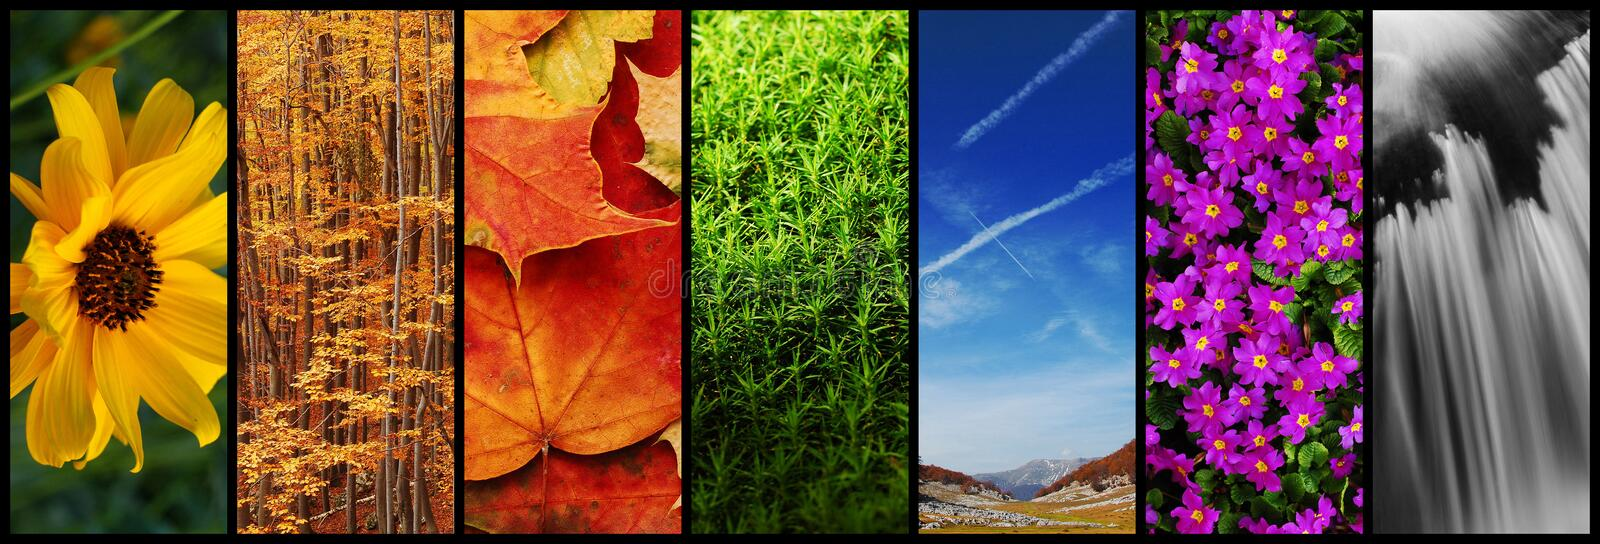 Nature collage royalty free stock images